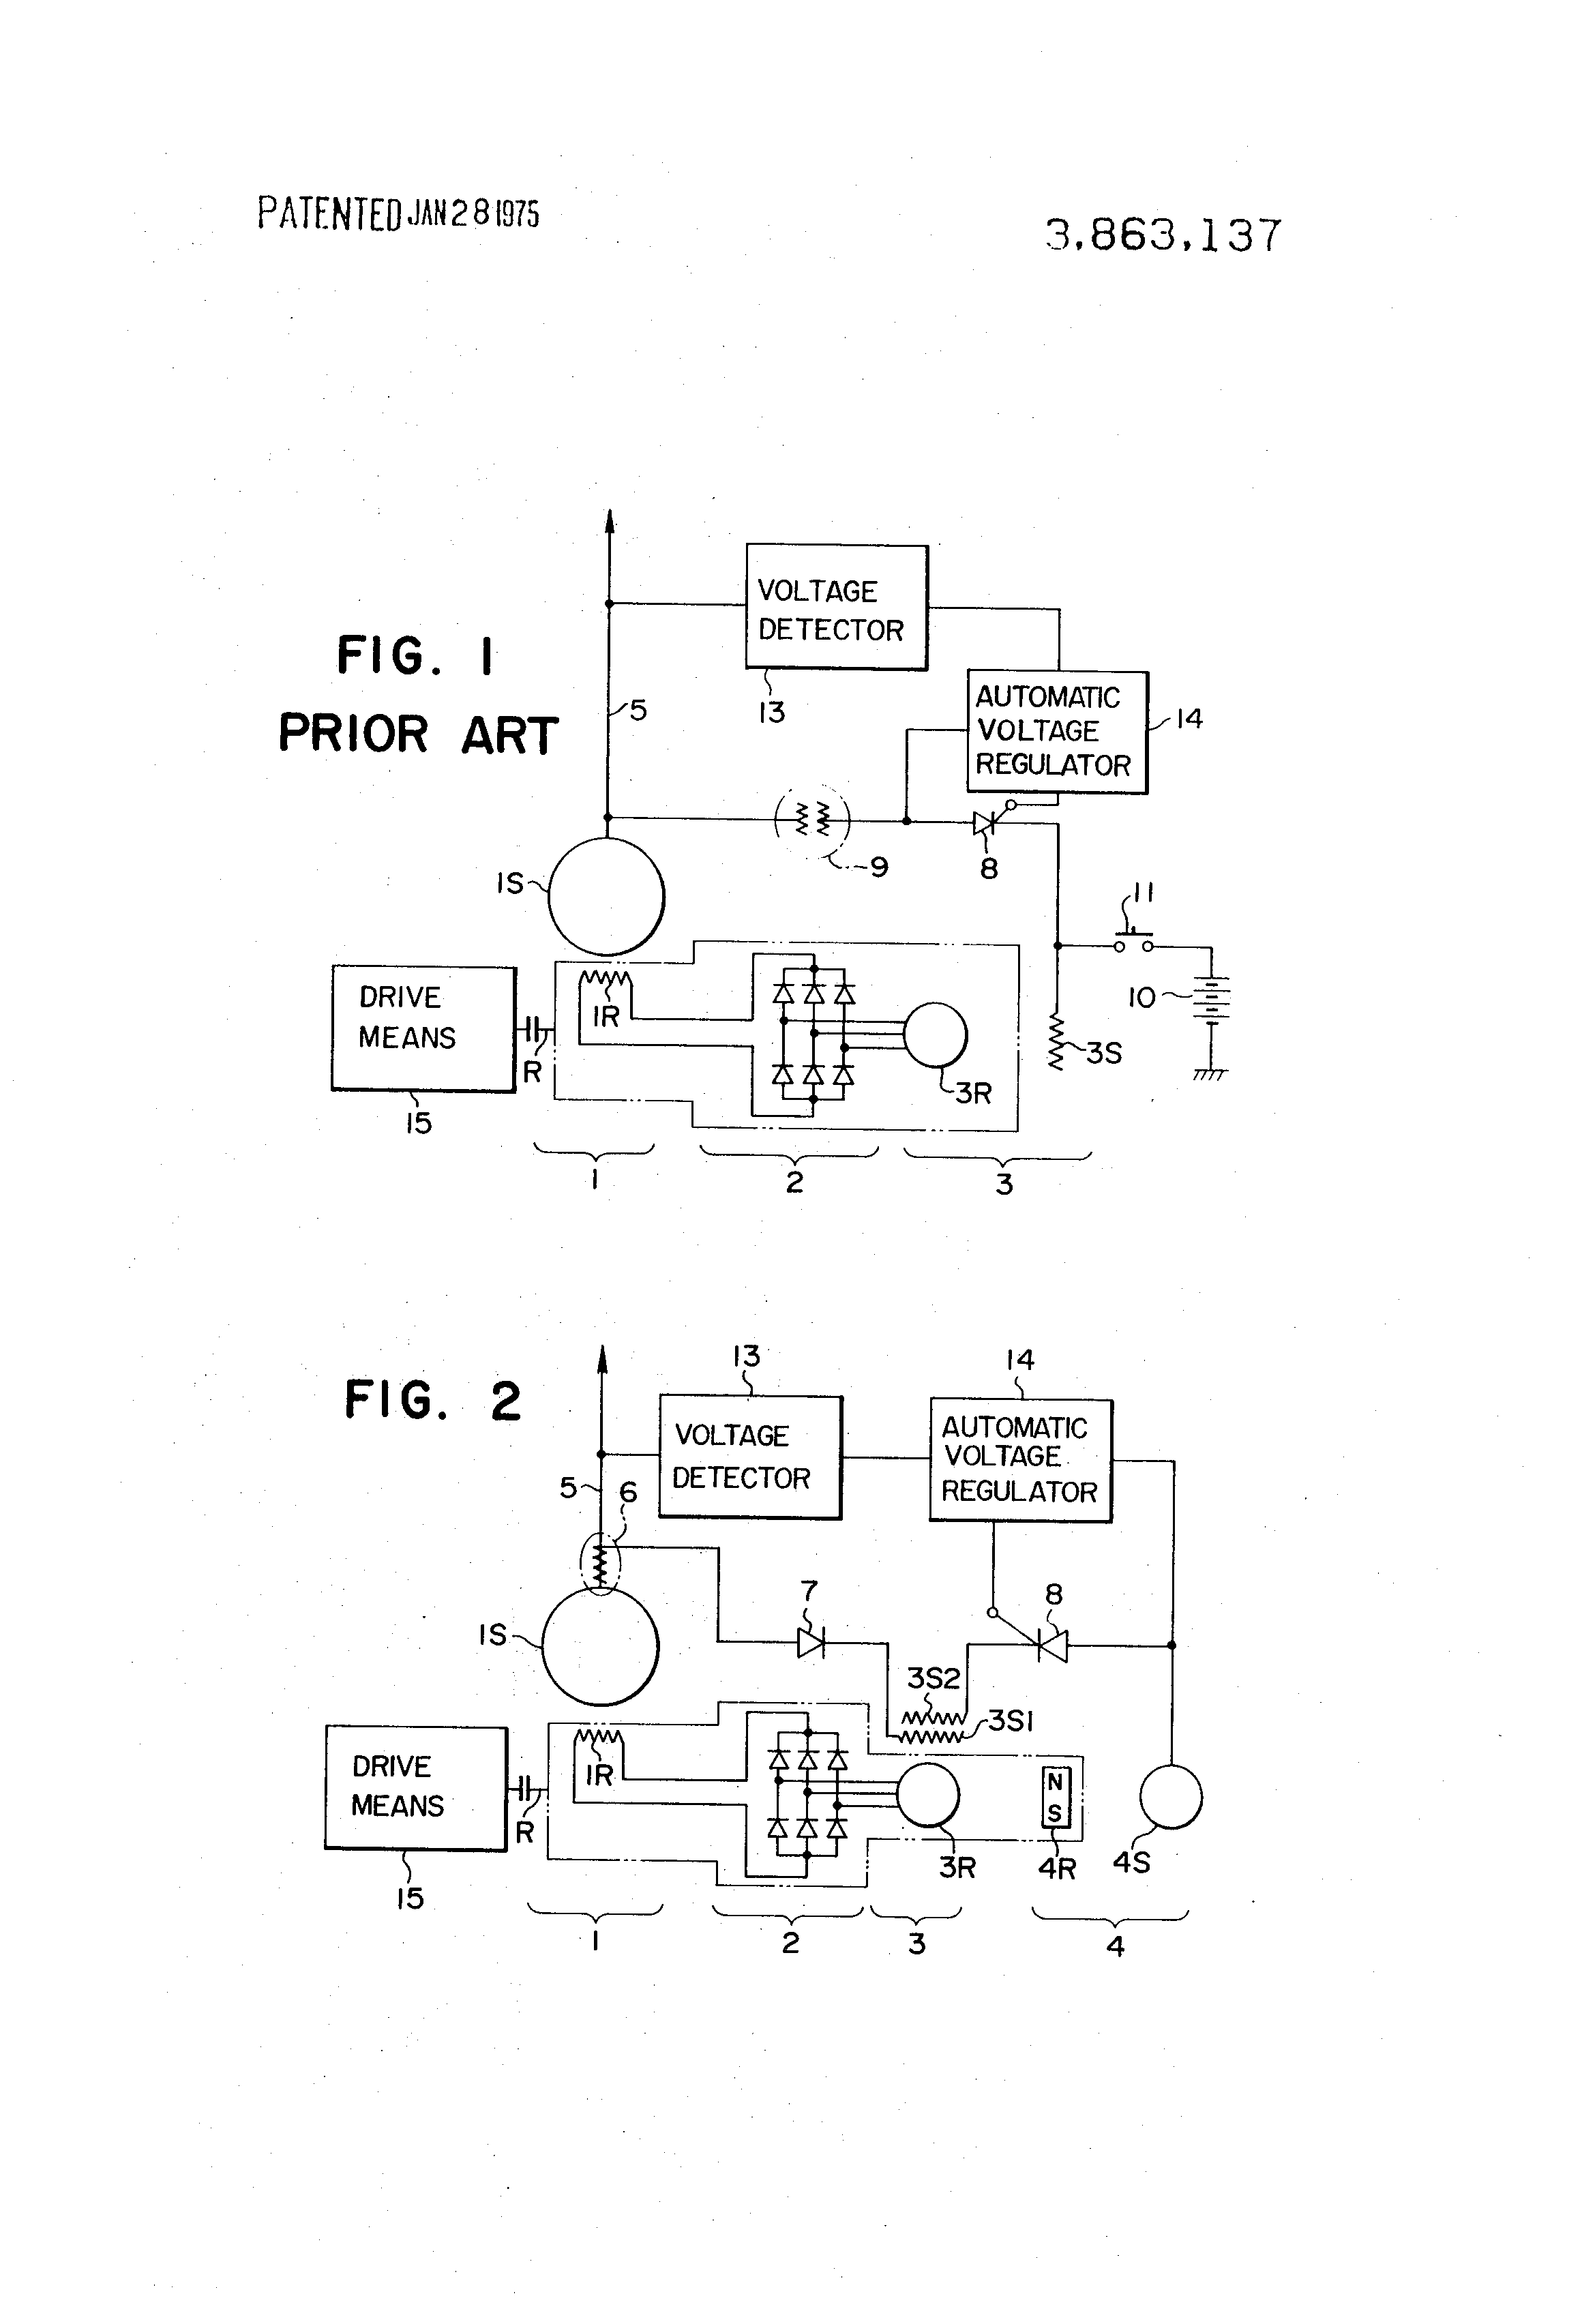 drawing the schematic diagram of automatic voltage regulators of patent us3863137 exciting system for alternator google patents on drawing the schematic diagram of automatic voltage ac generator